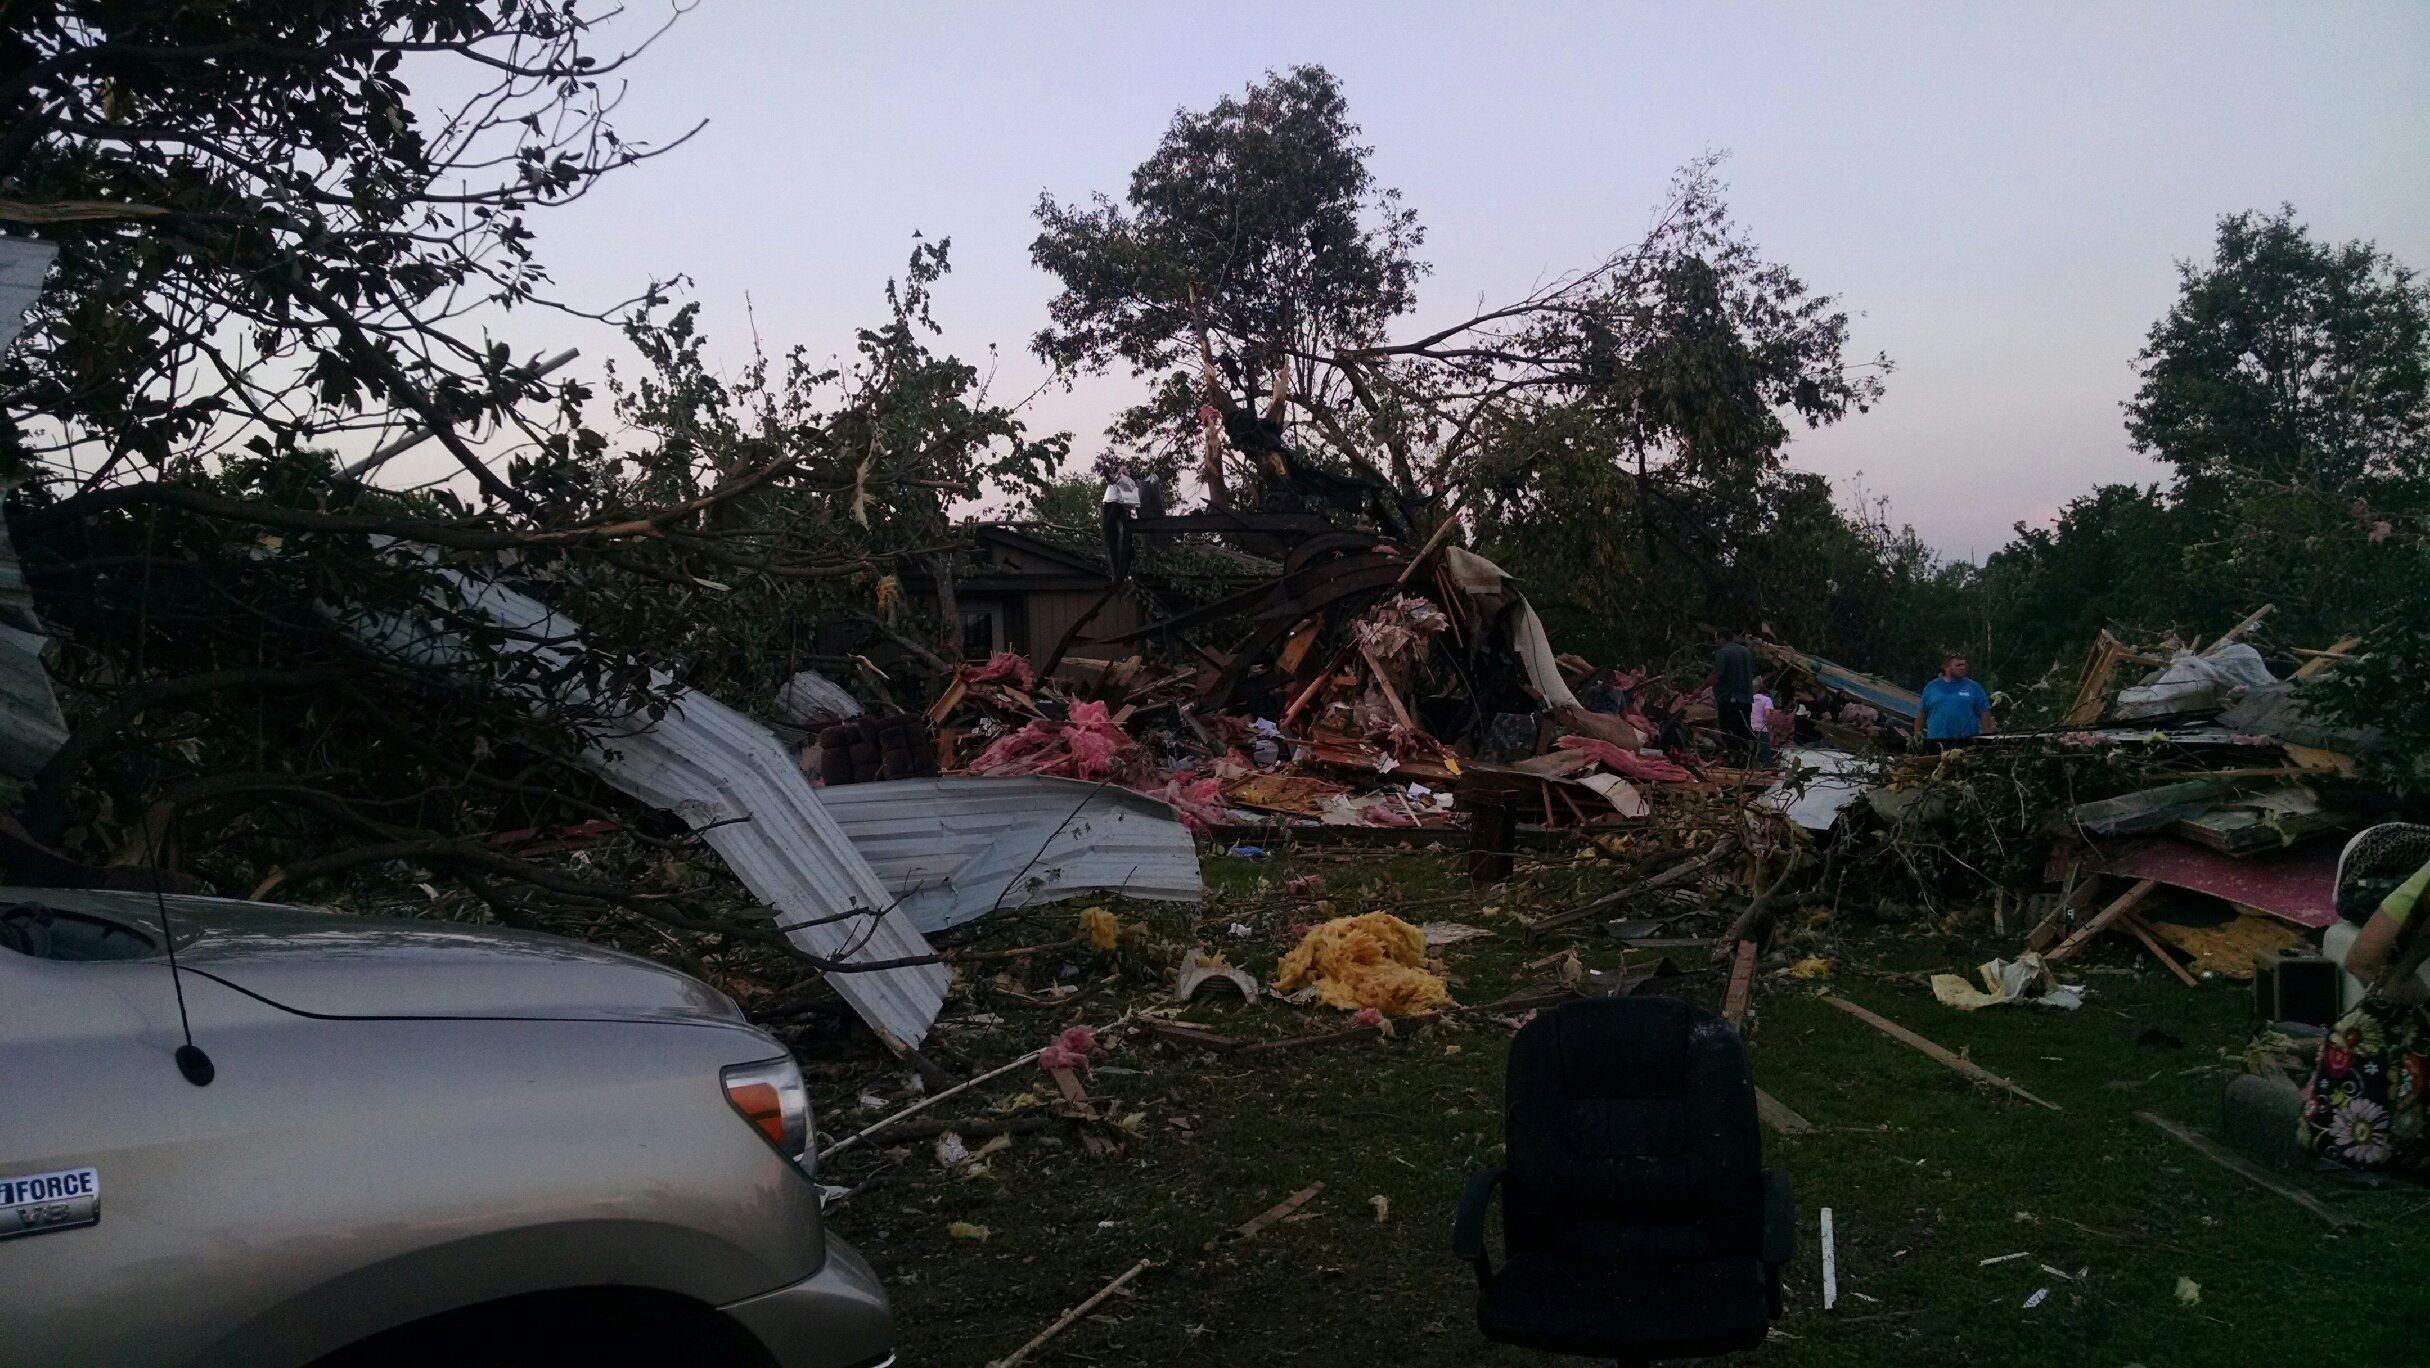 The storm and tornado that hit Graves County Tuesday, May 10, left destroyed property in its wake.